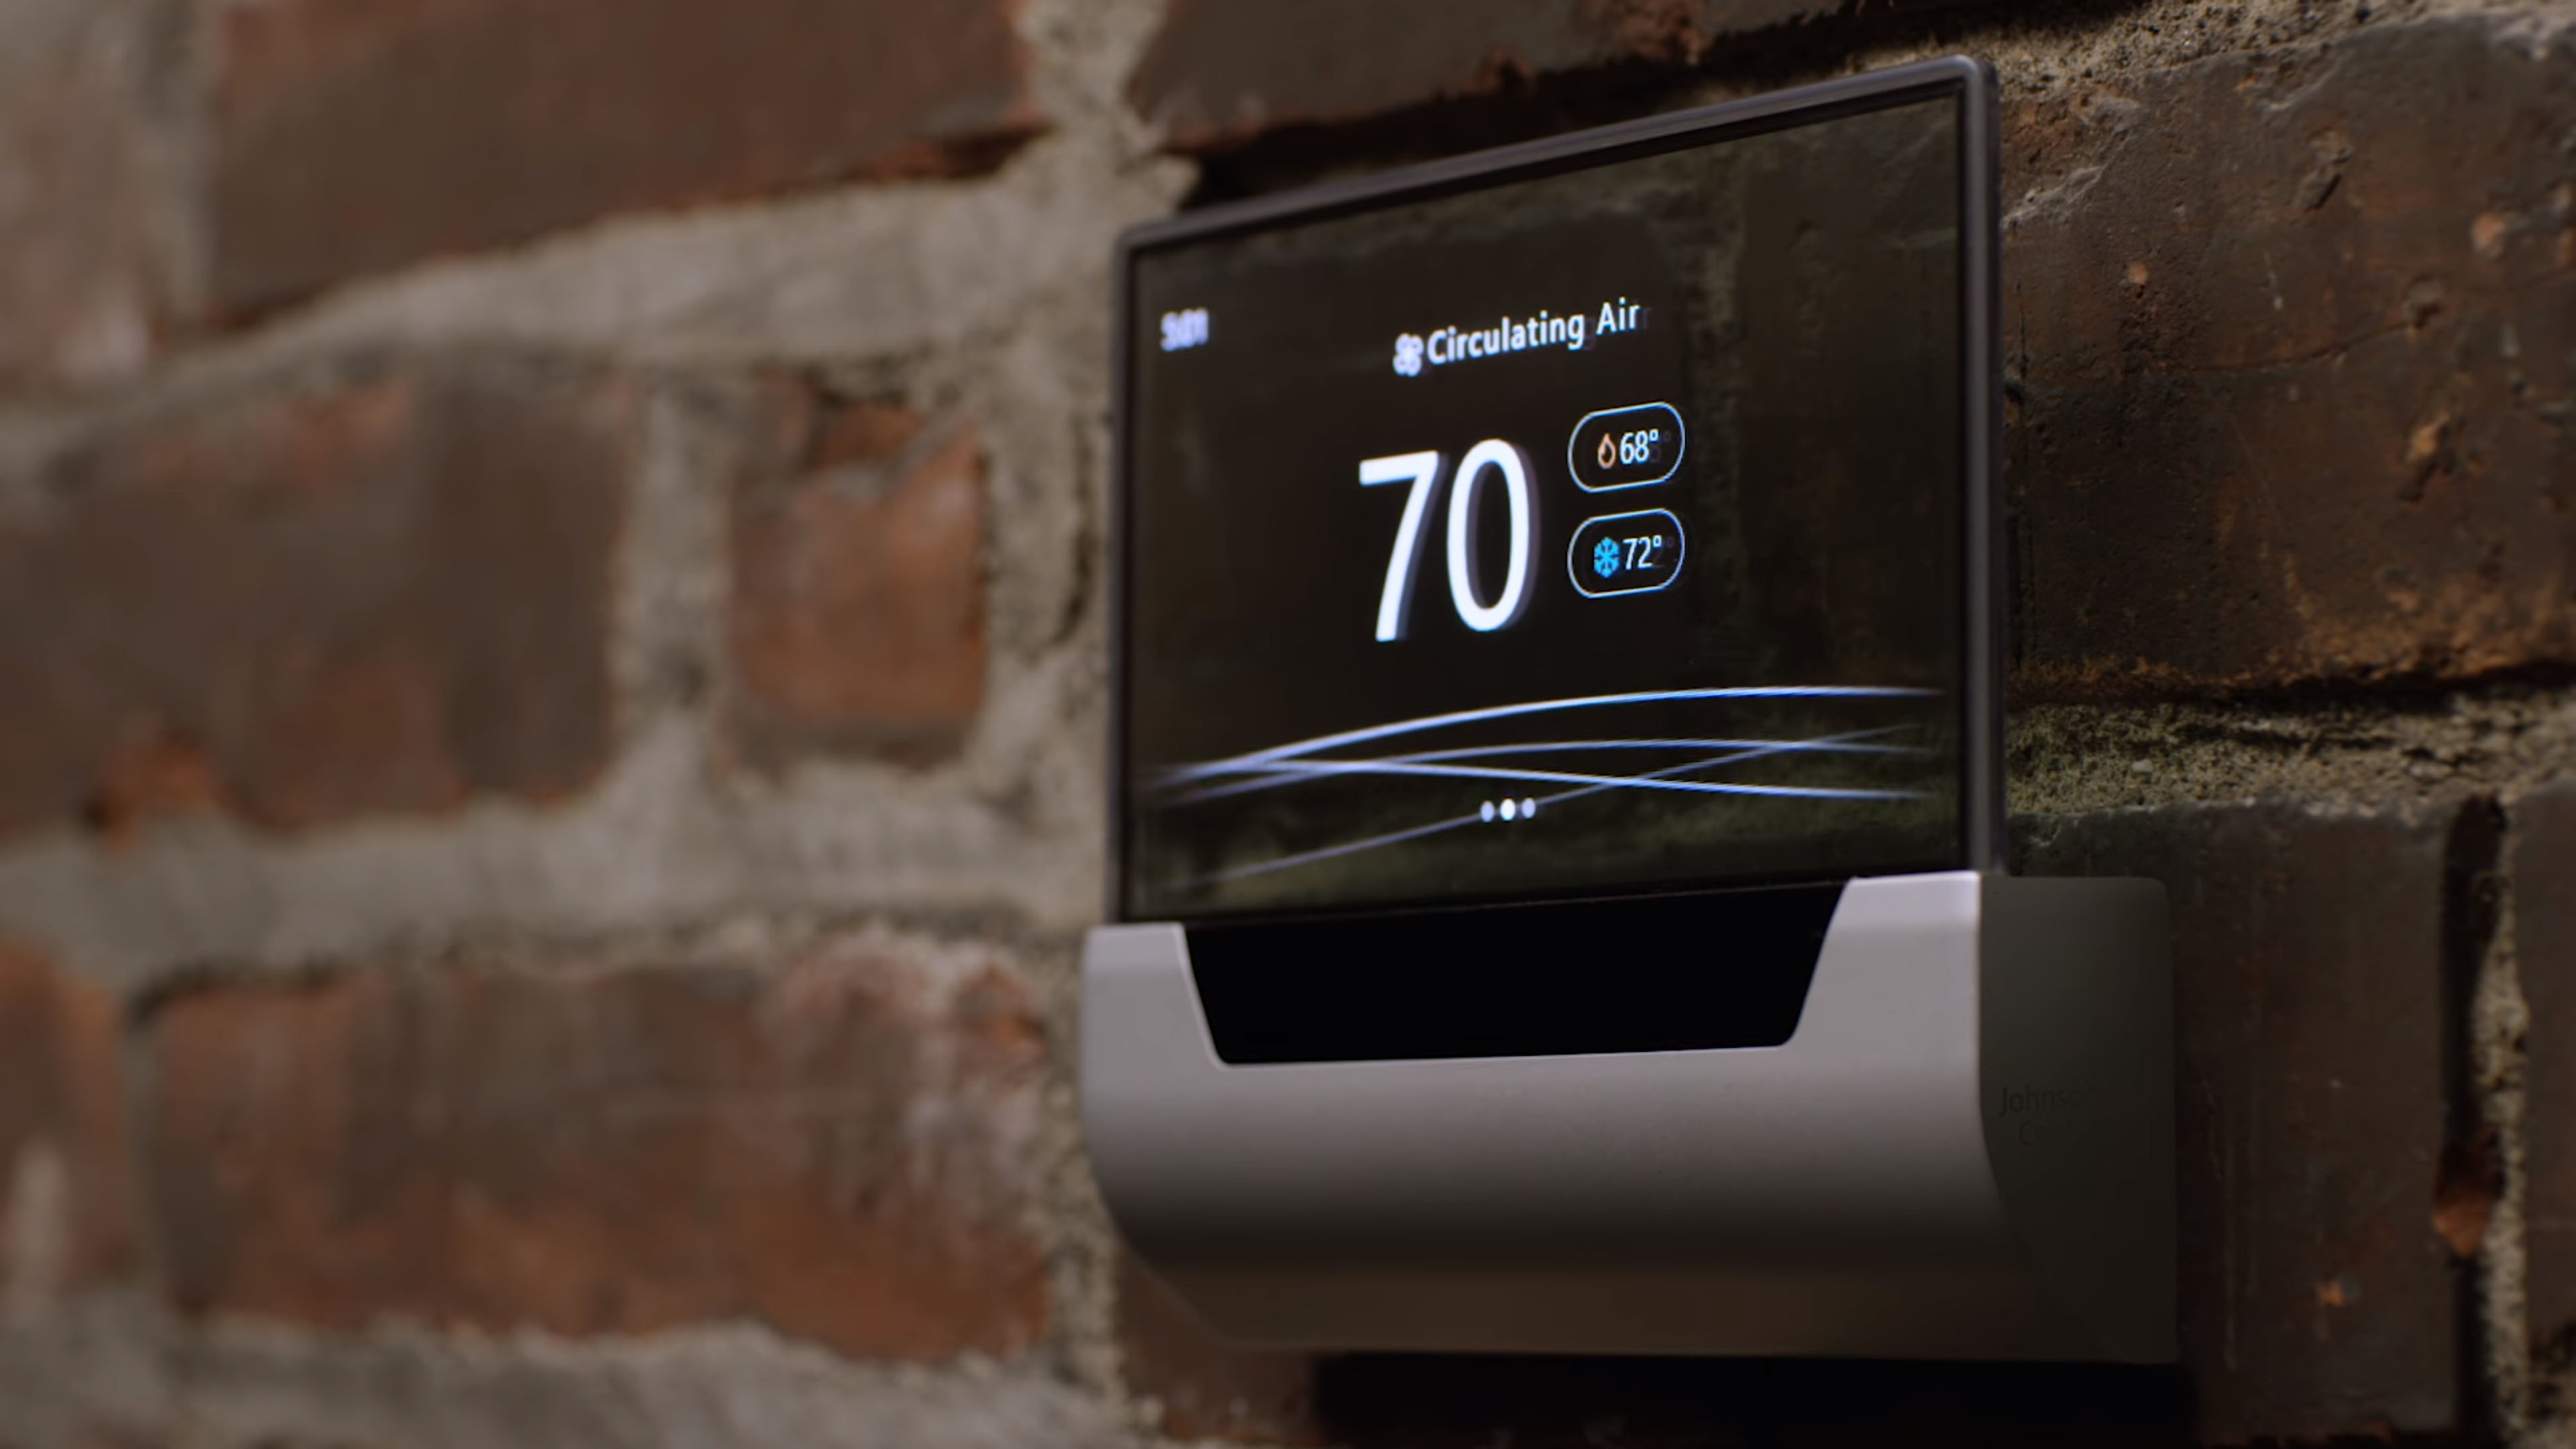 Microsoft and Johnson Controls unveil GLAS thermostat with built-in Cortana assistant